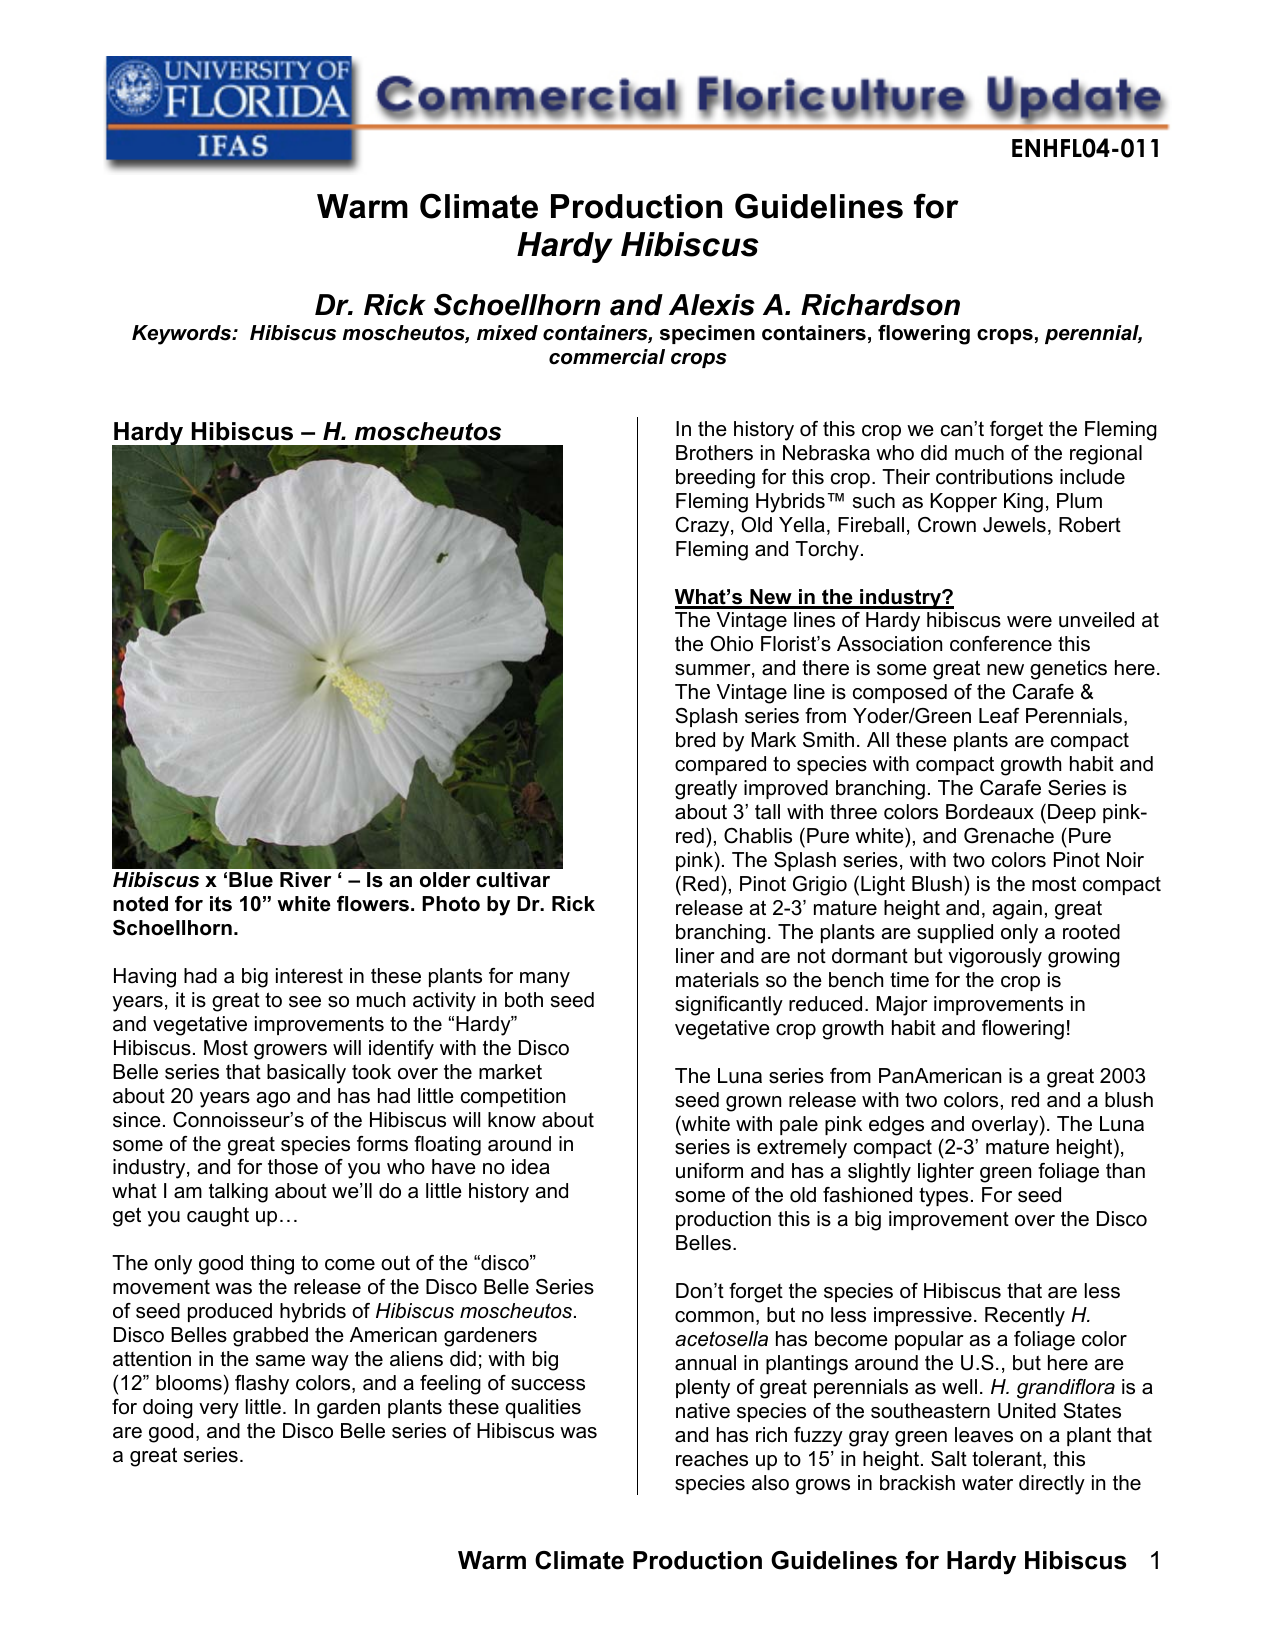 Warm Climate Production Guidelines For Hardy Hibiscus